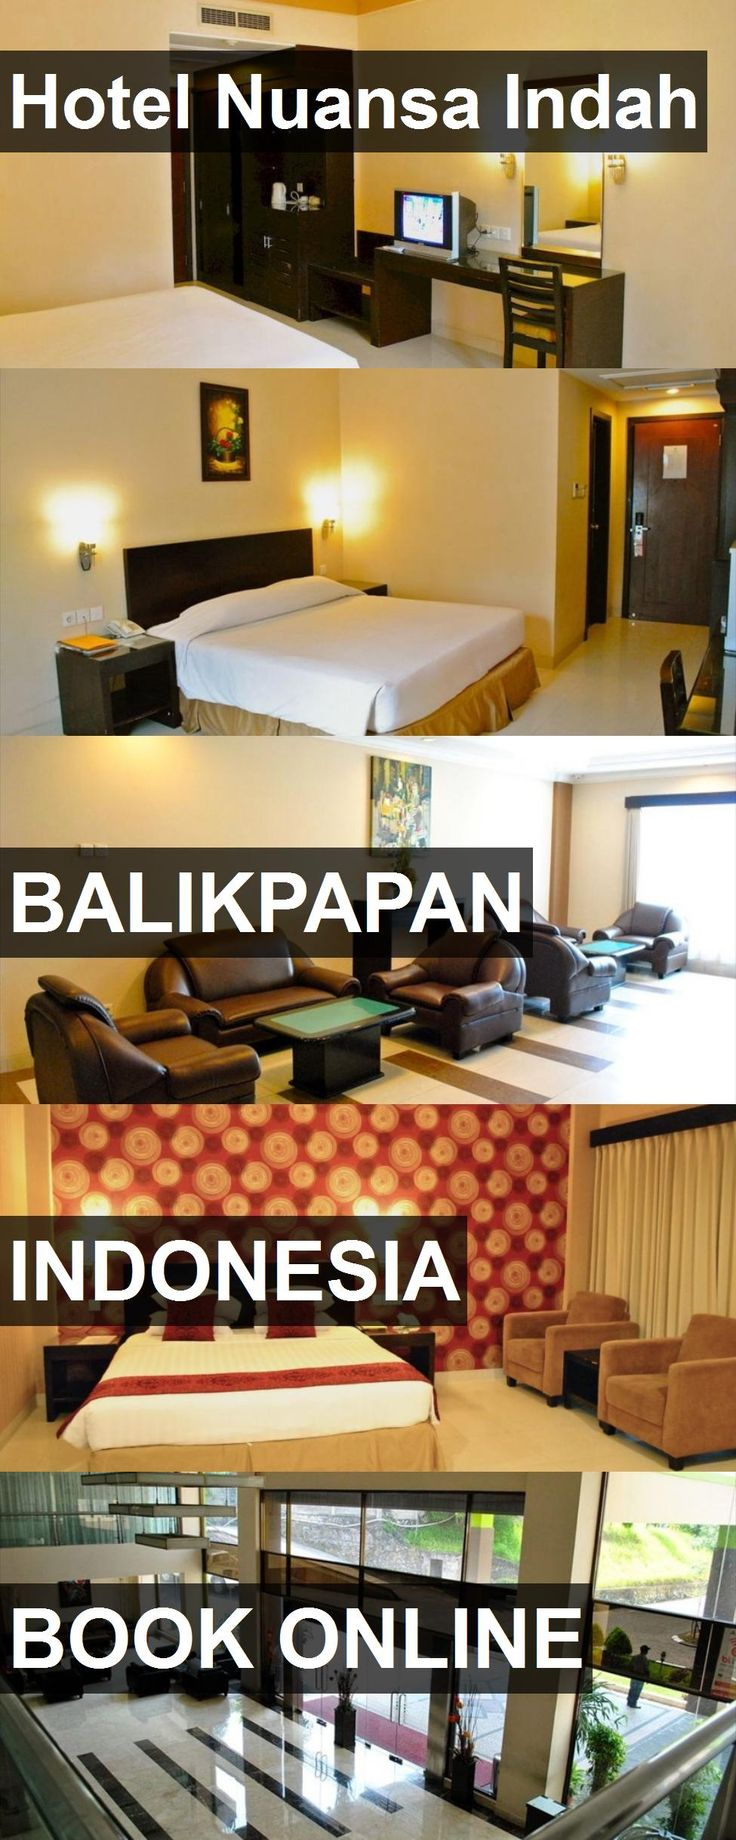 Hotel Hotel Nuansa Indah in Balikpapan, Indonesia. For more information, photos, reviews and best prices please follow the link. #Indonesia #Balikpapan #HotelNuansaIndah #hotel #travel #vacation